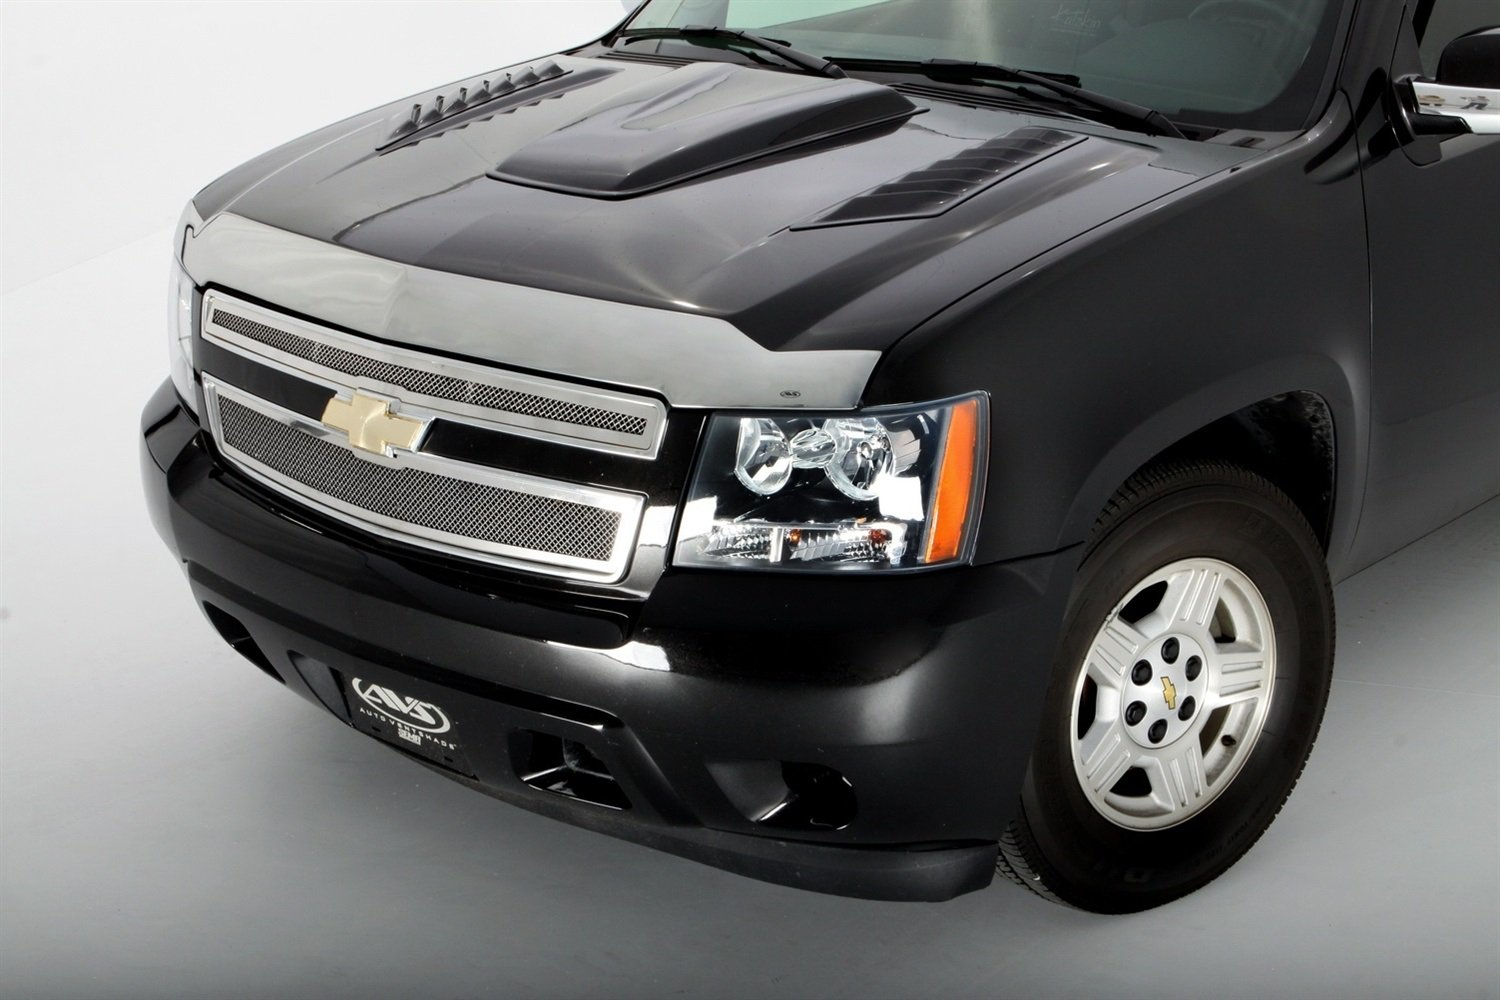 Avalanche 2007 chevy avalanche owners manual pdf : Amazon.com: Auto Ventshade 622011 Aeroskin Large Chrome Hood ...